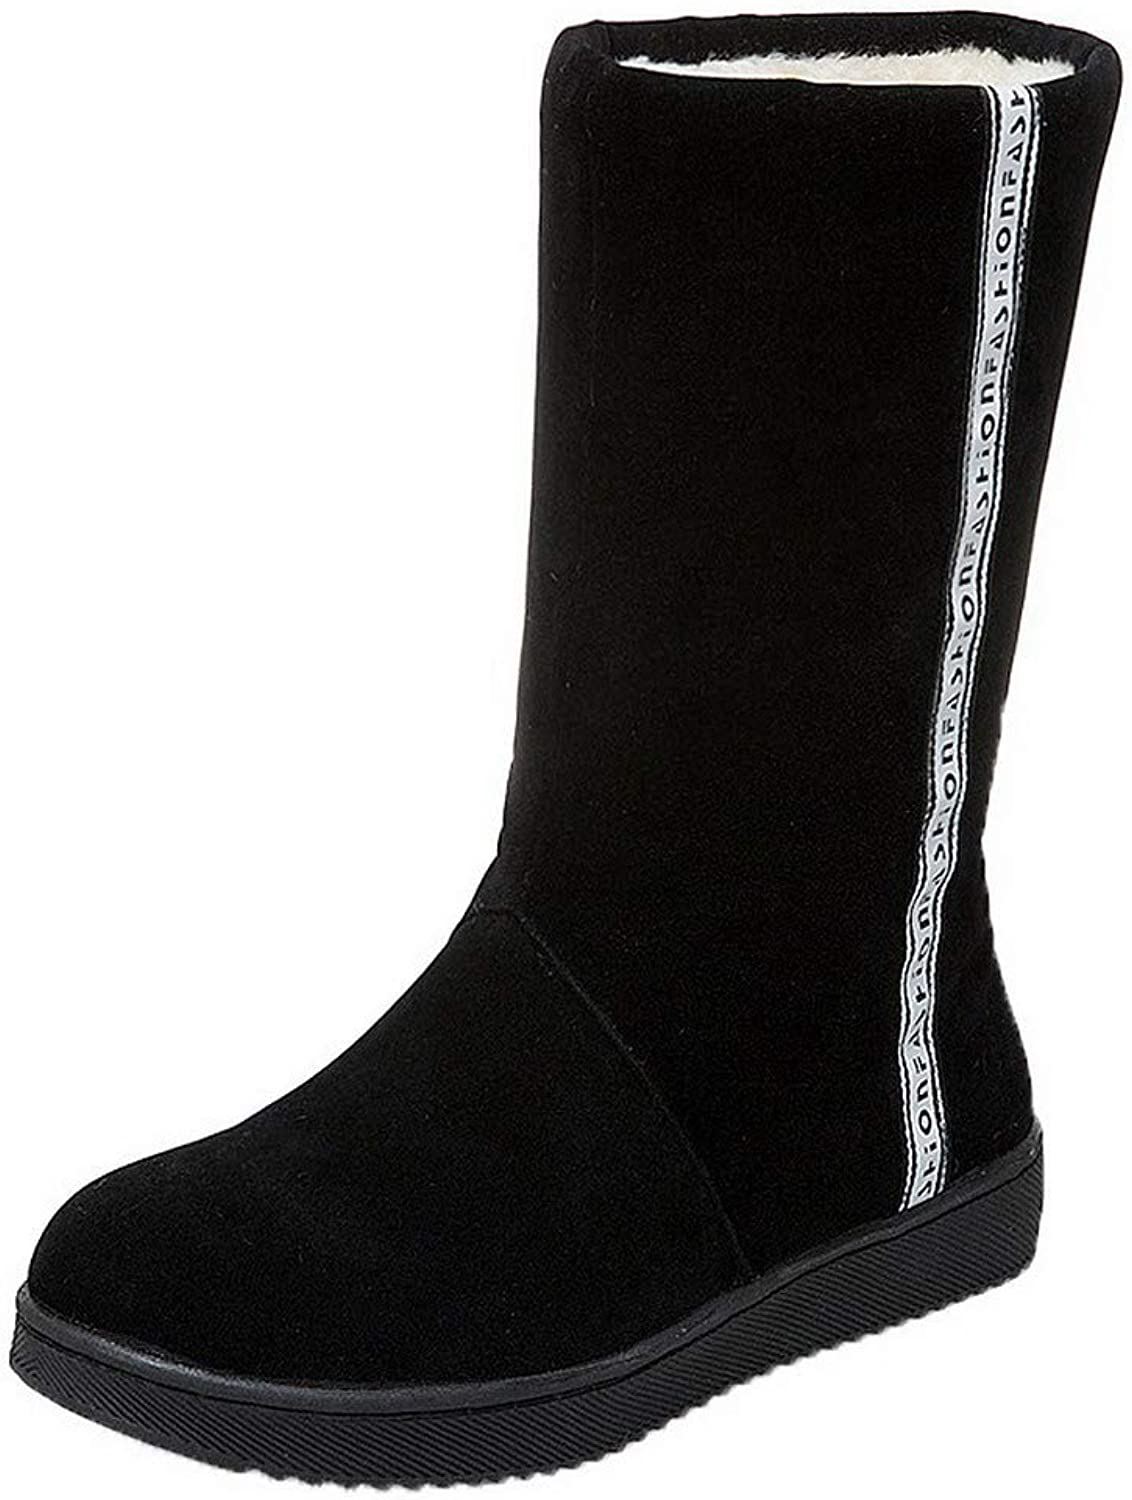 WeiPoot Women's Solid Frosted Low-Heels Pull-On Round-Toe Boots, EGHXG096463